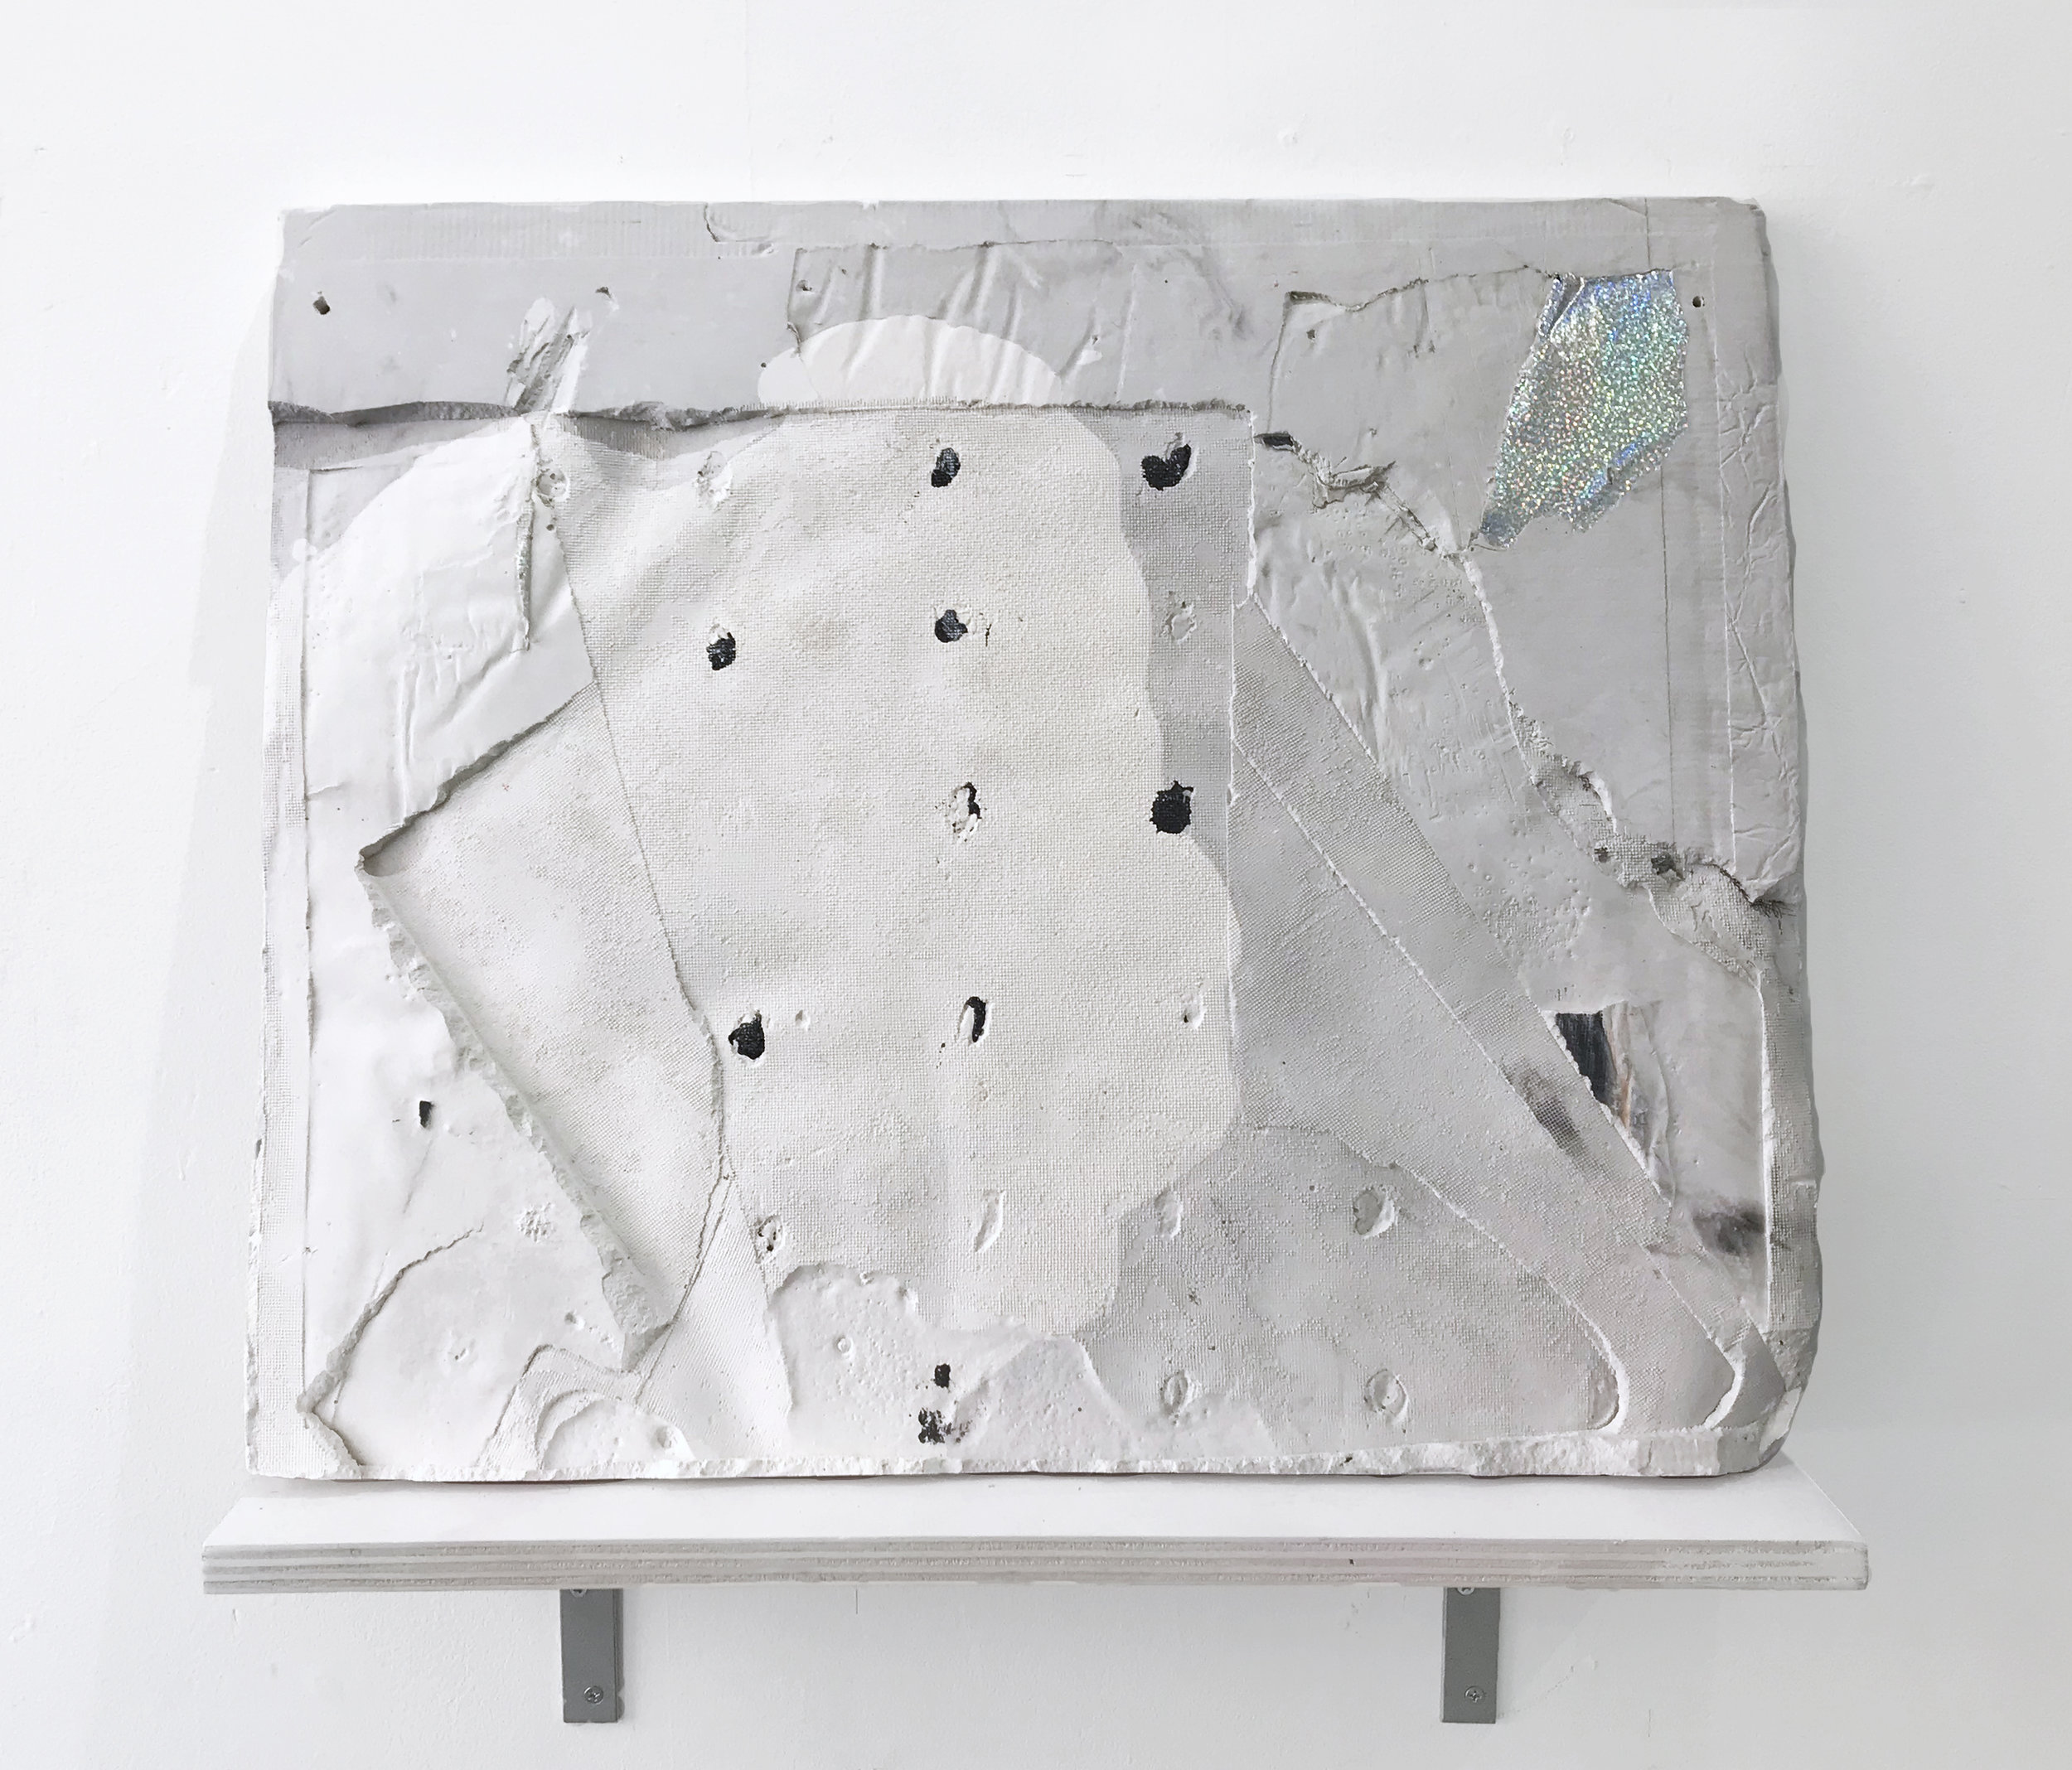 """Untitled (Screen relief), 2017  Plaster, paint and paper scraps. 20x24"""""""